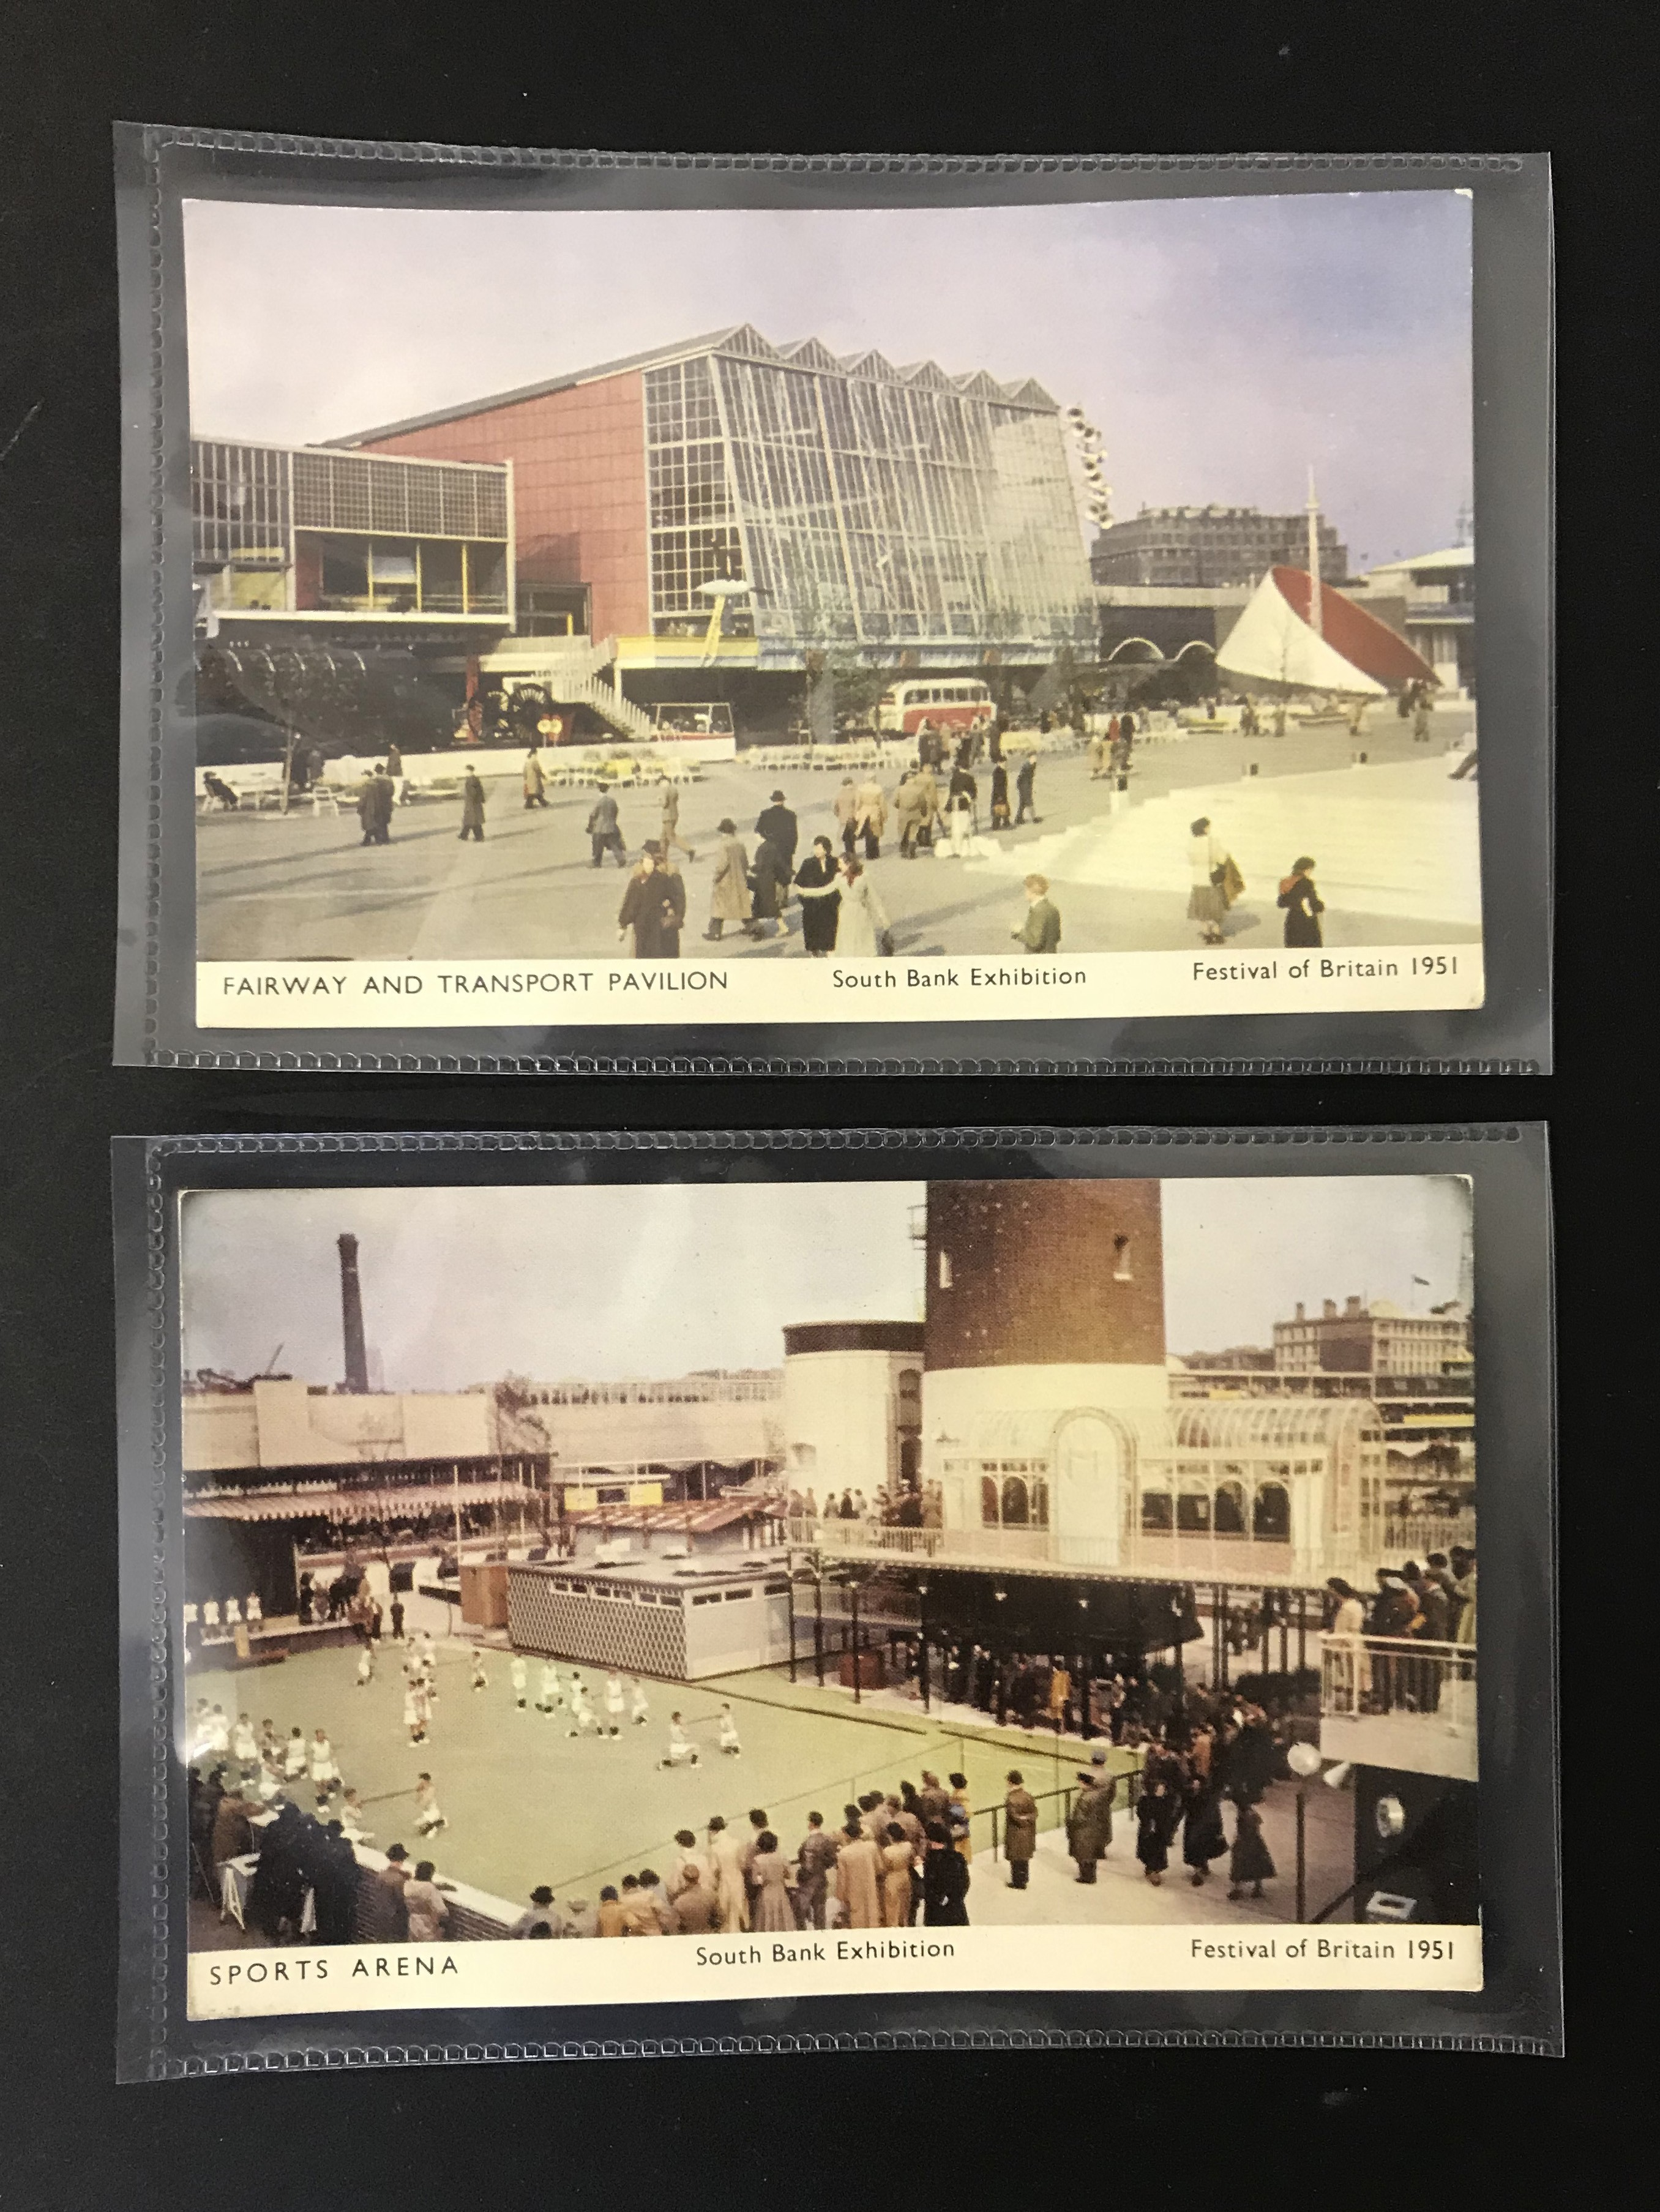 COMPLETE SET OF SIX FESTIVAL OF BRITAIN POSTCARDS - 6 JARROLD POSTCARDS - SOUTH BANK EXHIBITION - Image 4 of 6